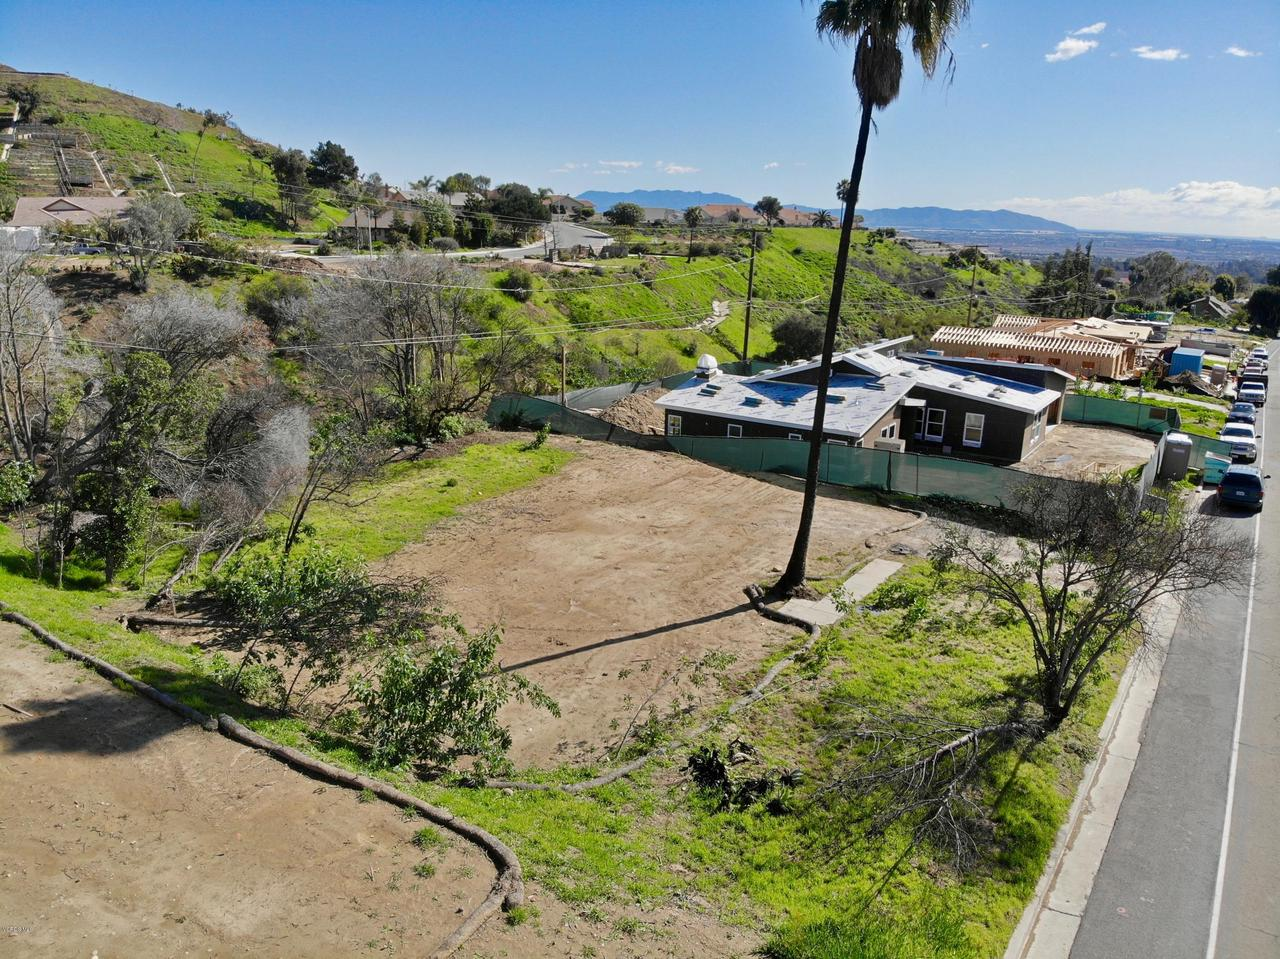 918 COLINA, Ventura, CA 93003 - Southern View from above the Lot